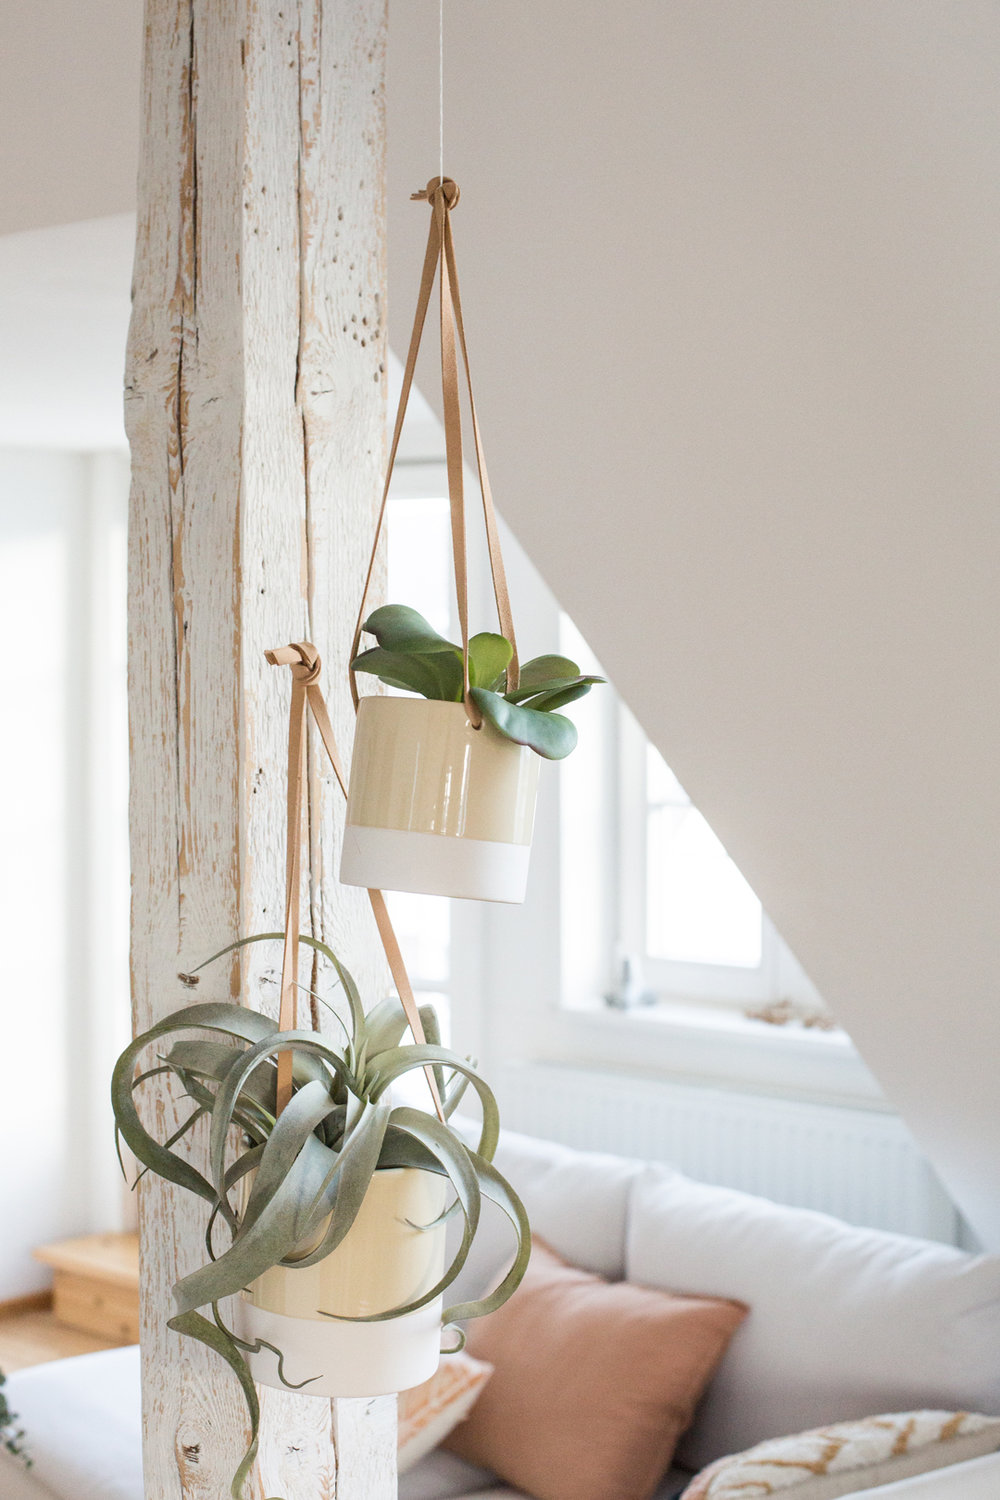 Faux leather straps with ceramic pots to hang for the Urban Jungle